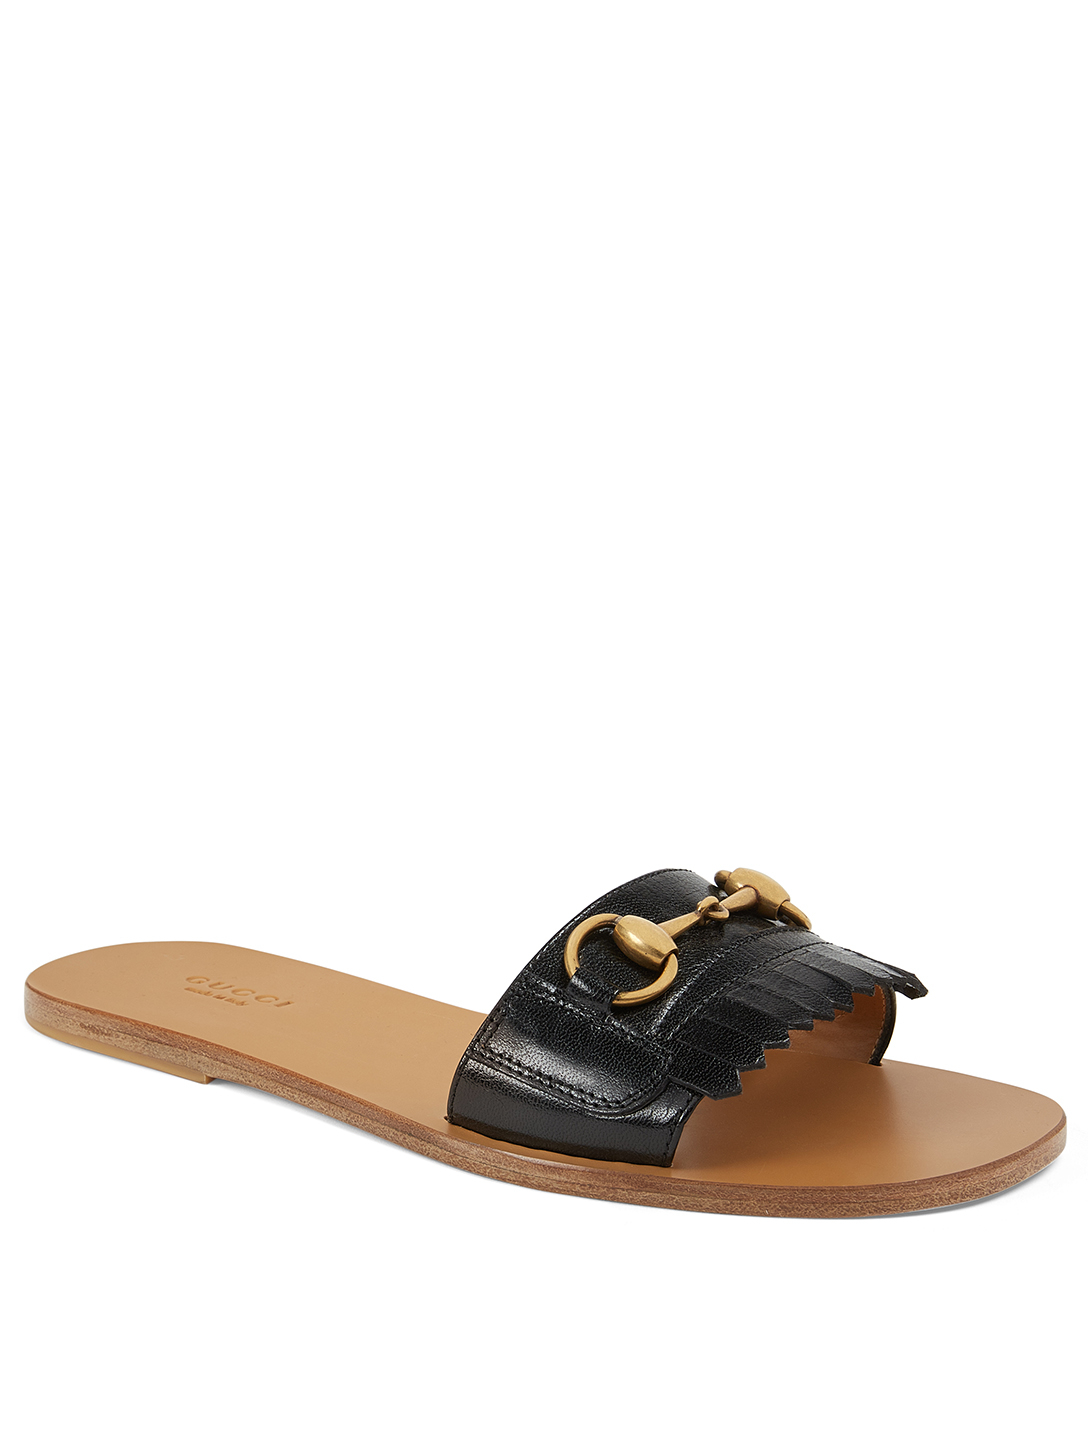 GUCCI Varadero Fringe Leather Slides Womens Black